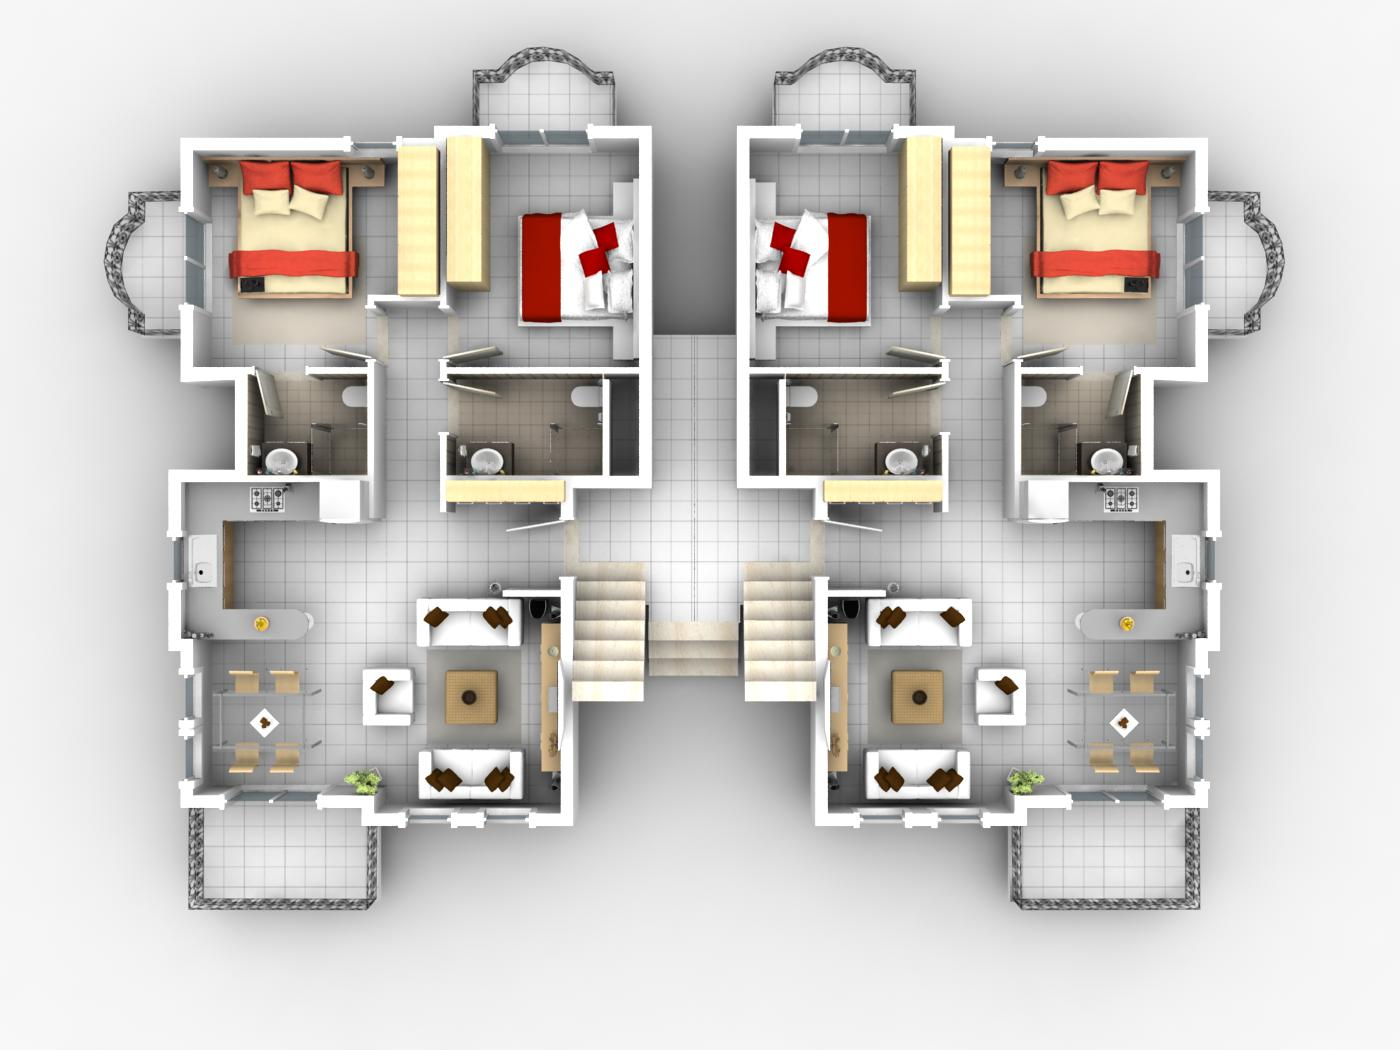 3 Bedroom European Apartment Floor Plans Bedroom: house plan software